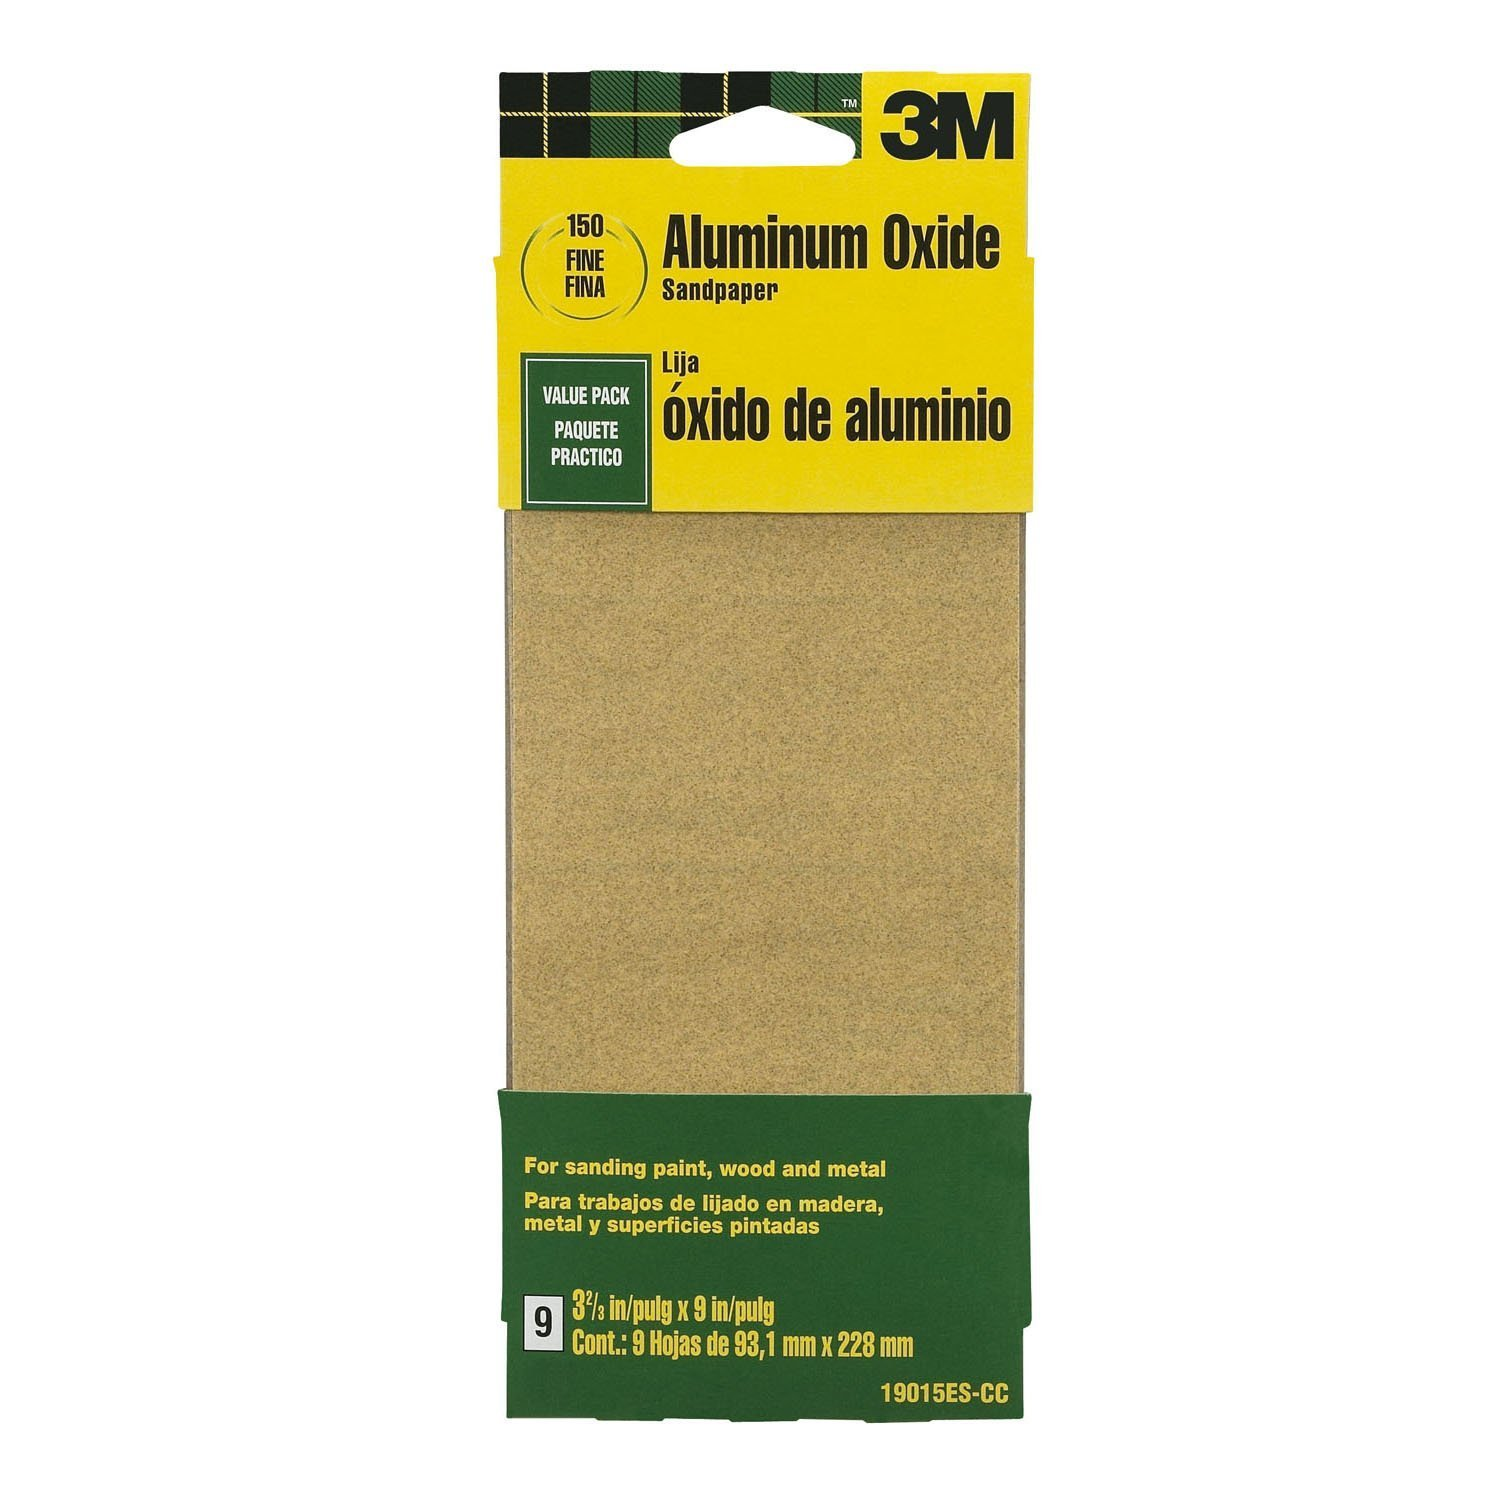 3M Aluminum Obyide Sandpaper 3 2/3 by 9-Inch, 60 Coarse grit, 6-PACK